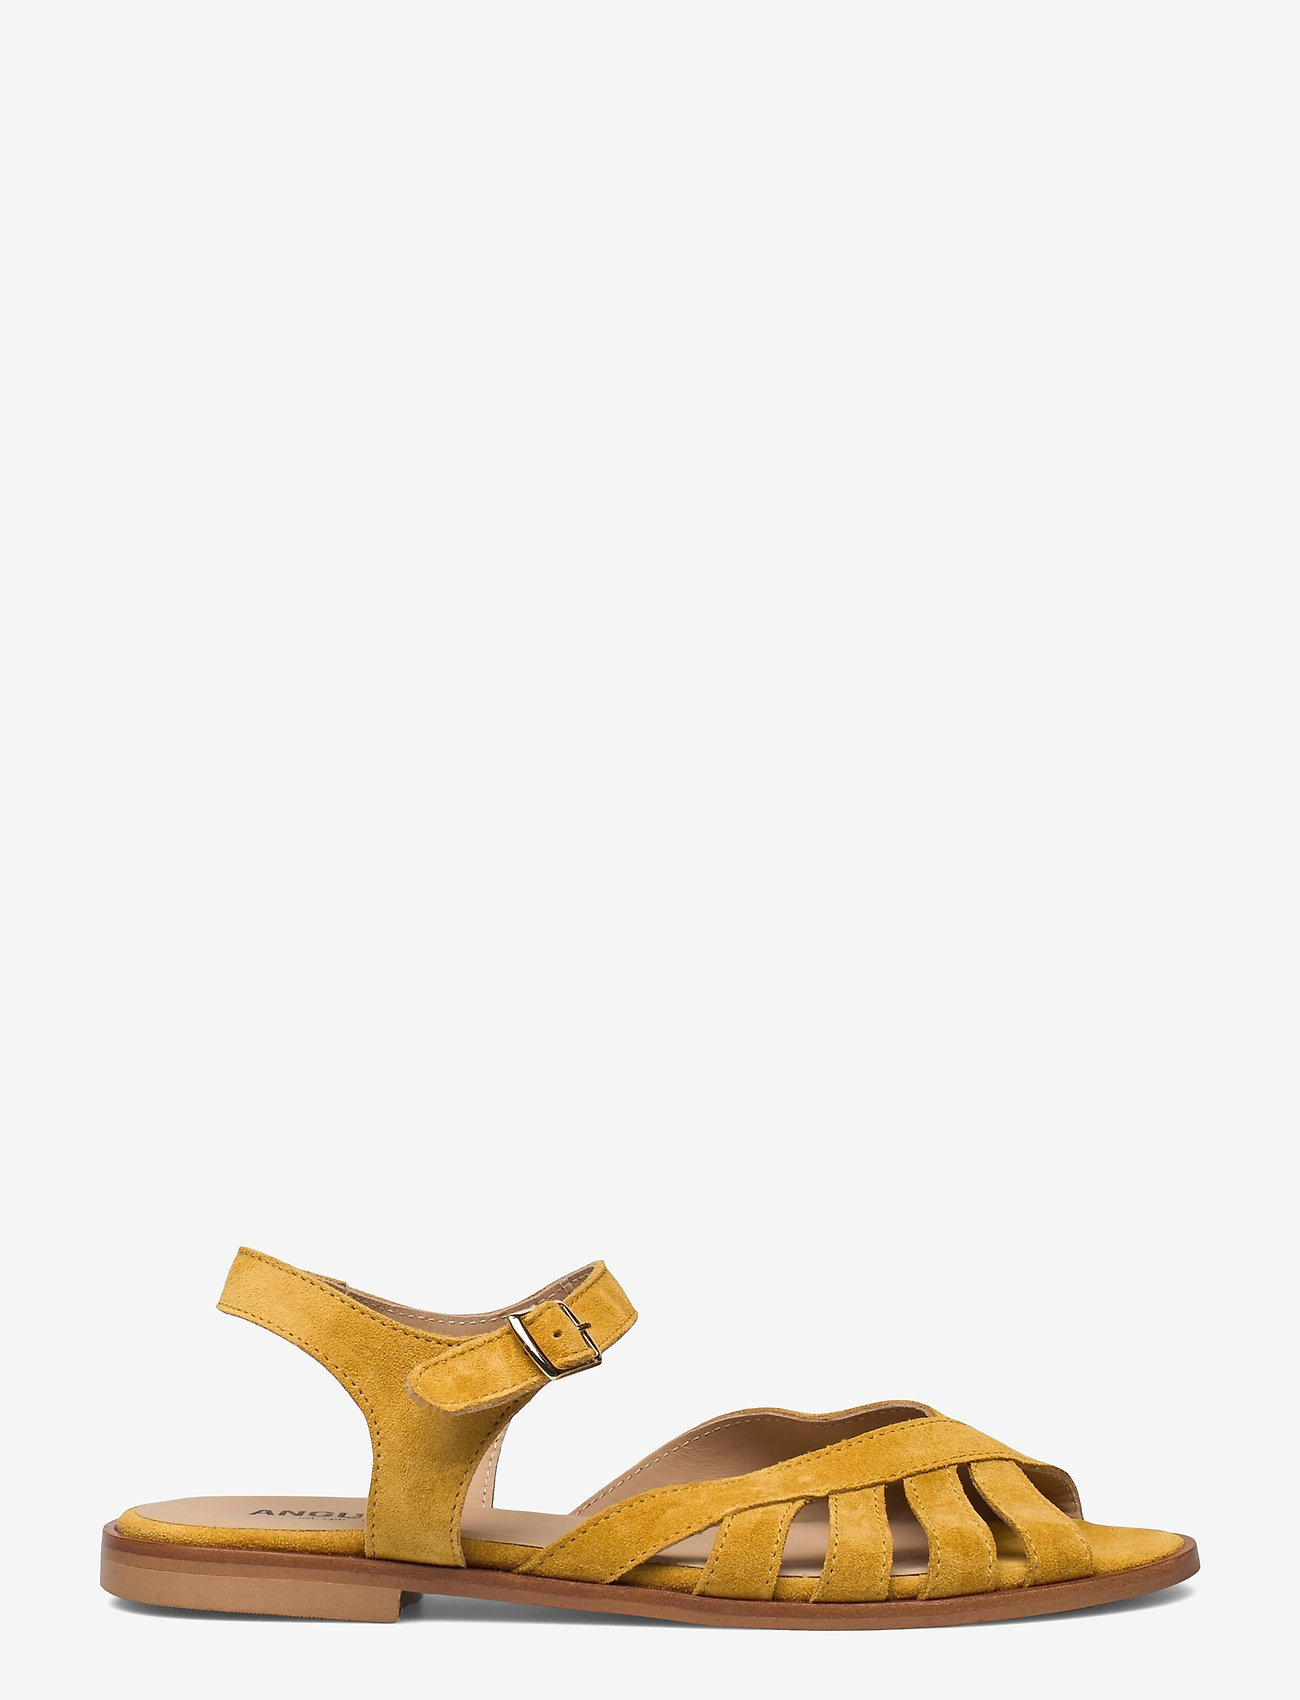 ANGULUS - Sandals - flat - open toe - op - flache sandalen - 2201 yellow - 1